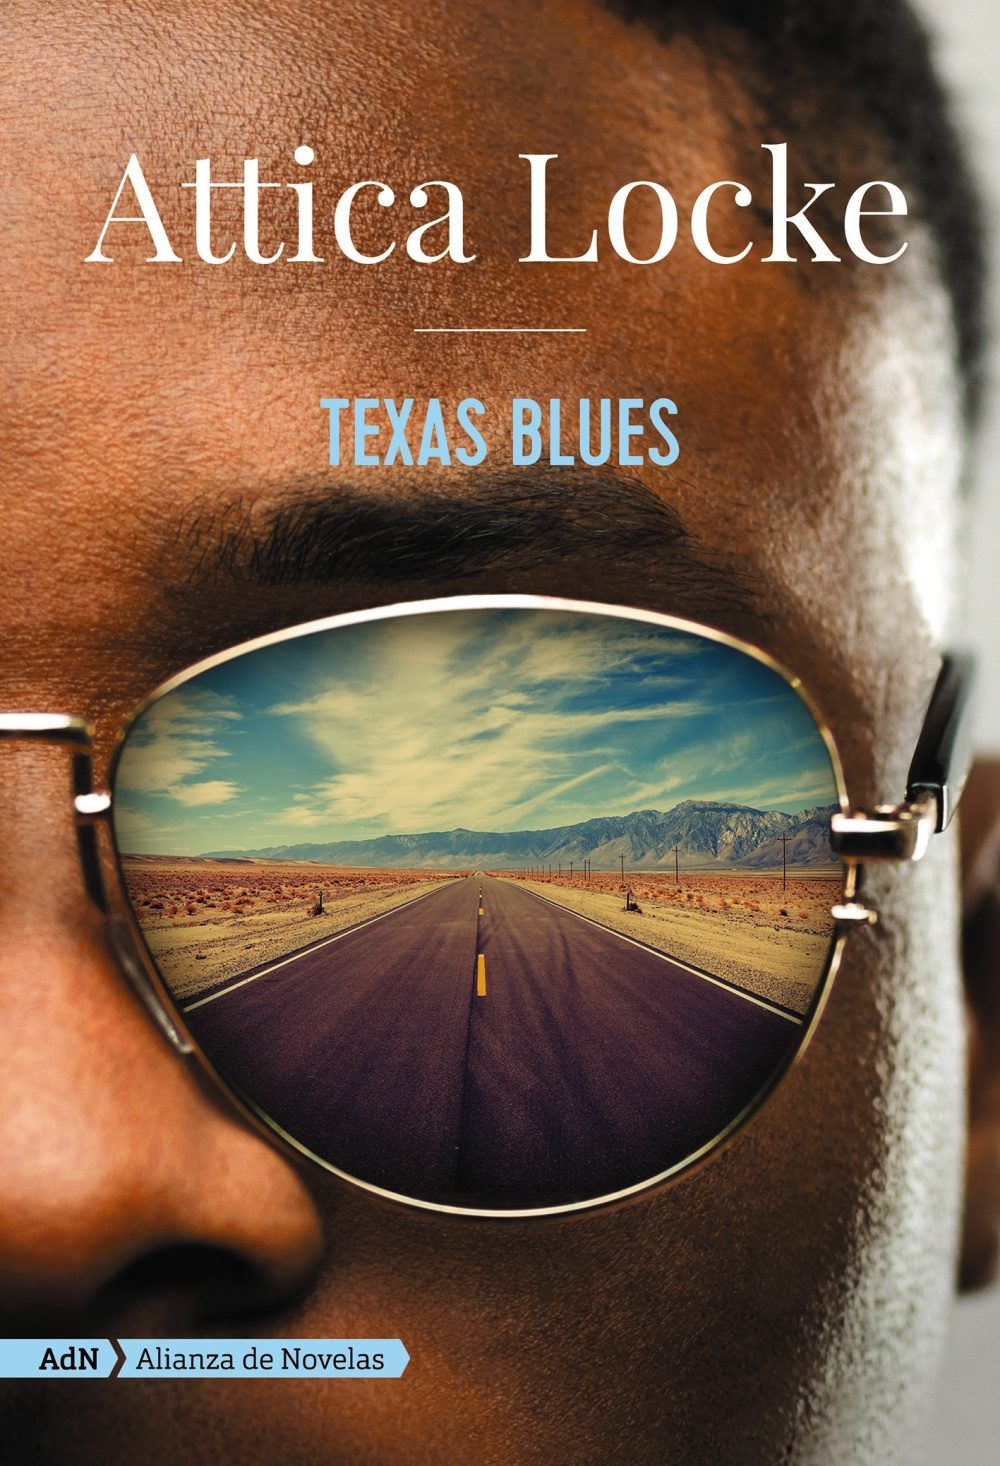 ▷ Descargar el libro Texas Blues (PDF - ePUB)